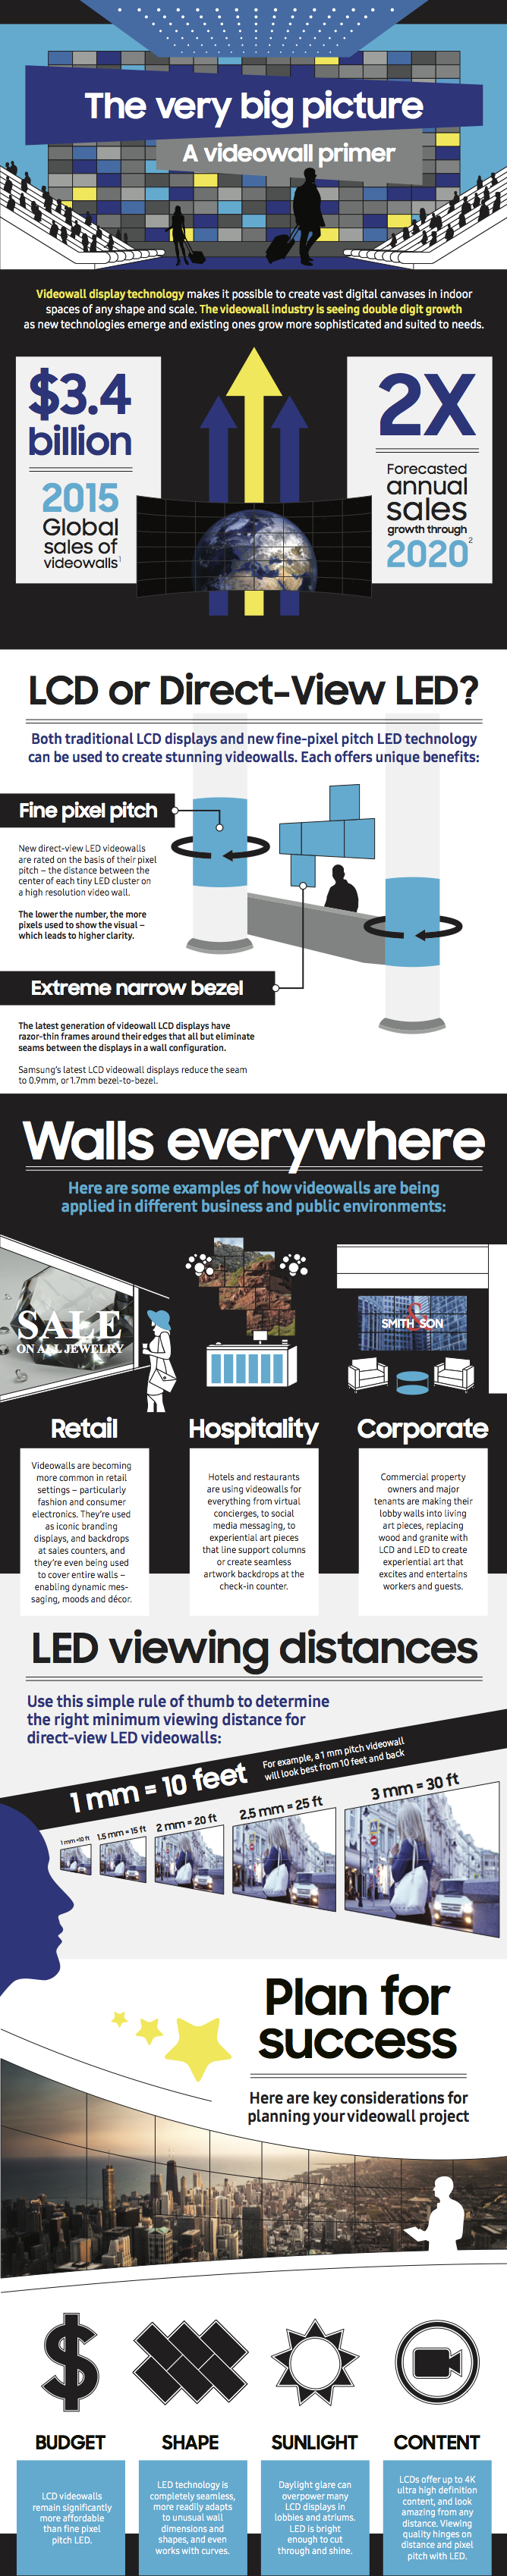 infographic on video wall display technology